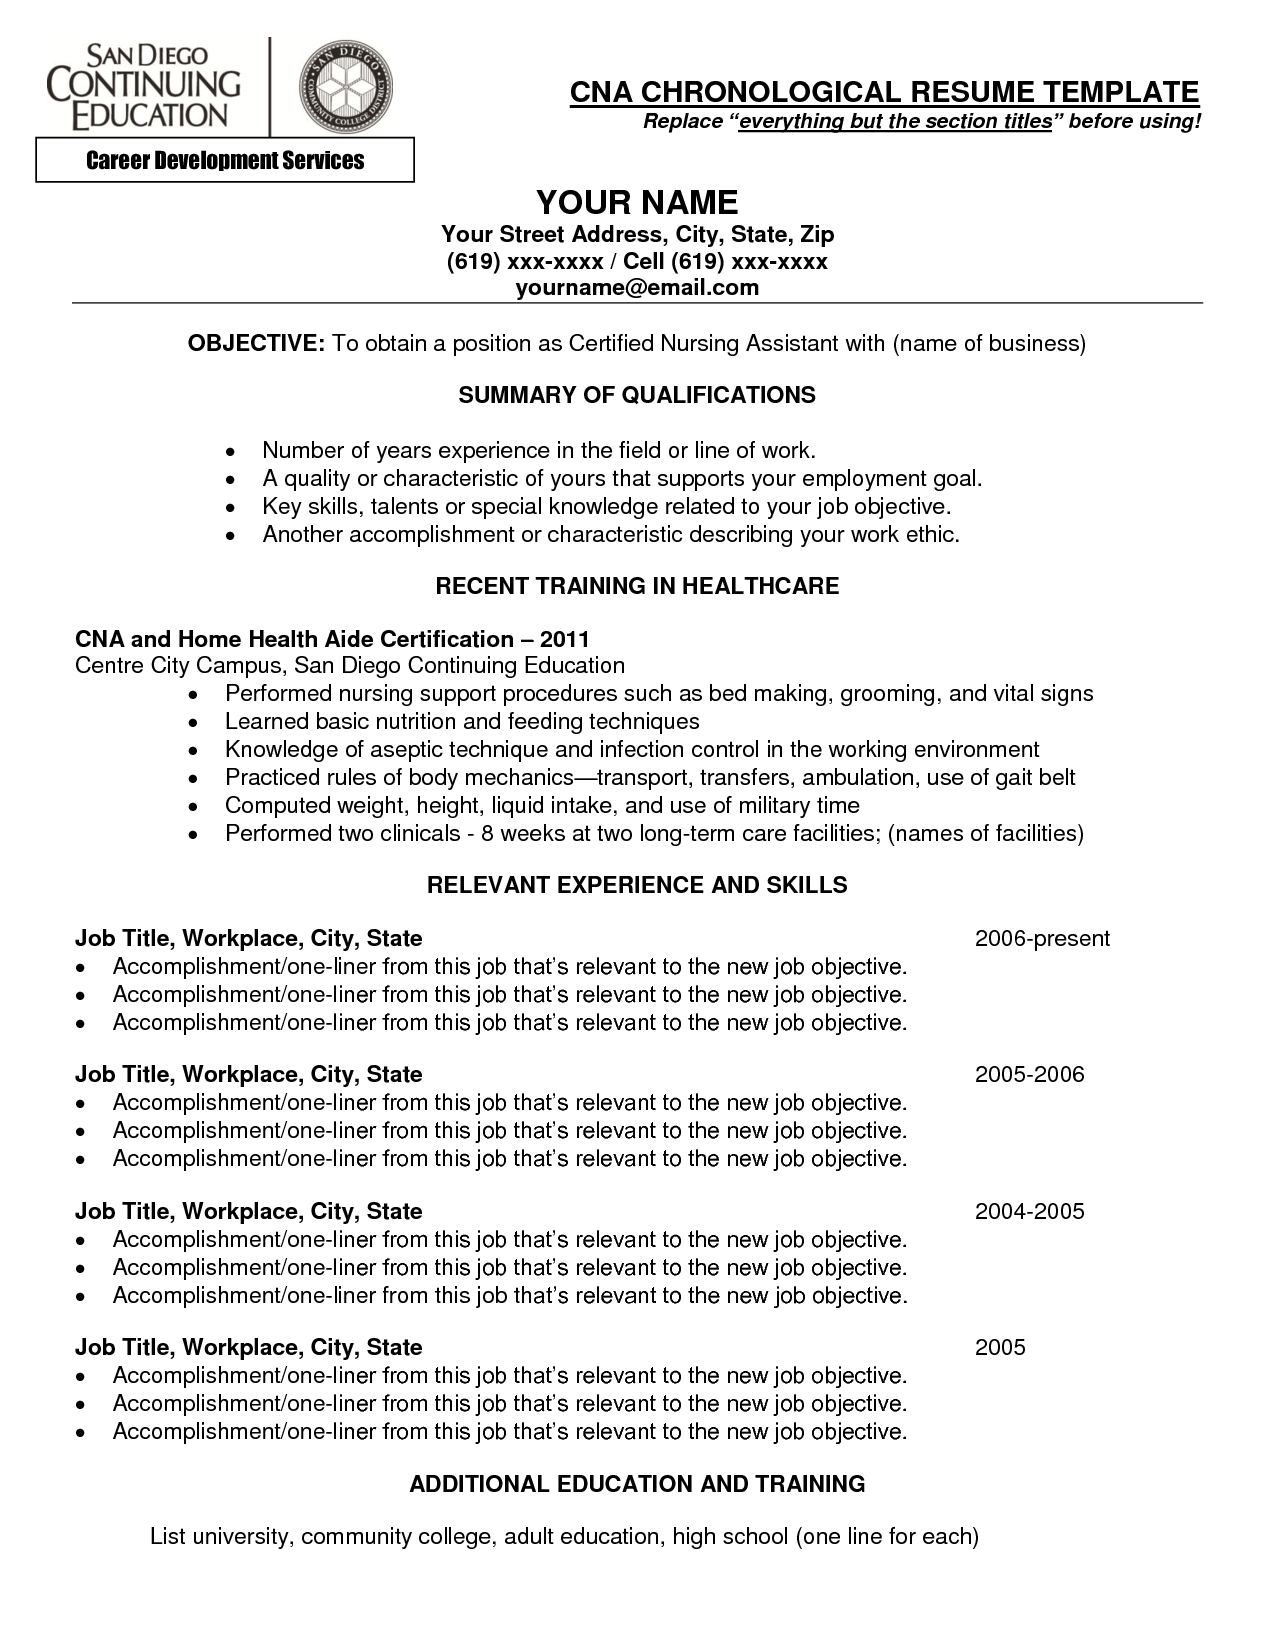 cna skills resume for 2016 samplebusinessresume com cna chronological resume template relevant experience and skills list of cna skills for resume certified nursing assistant resume example